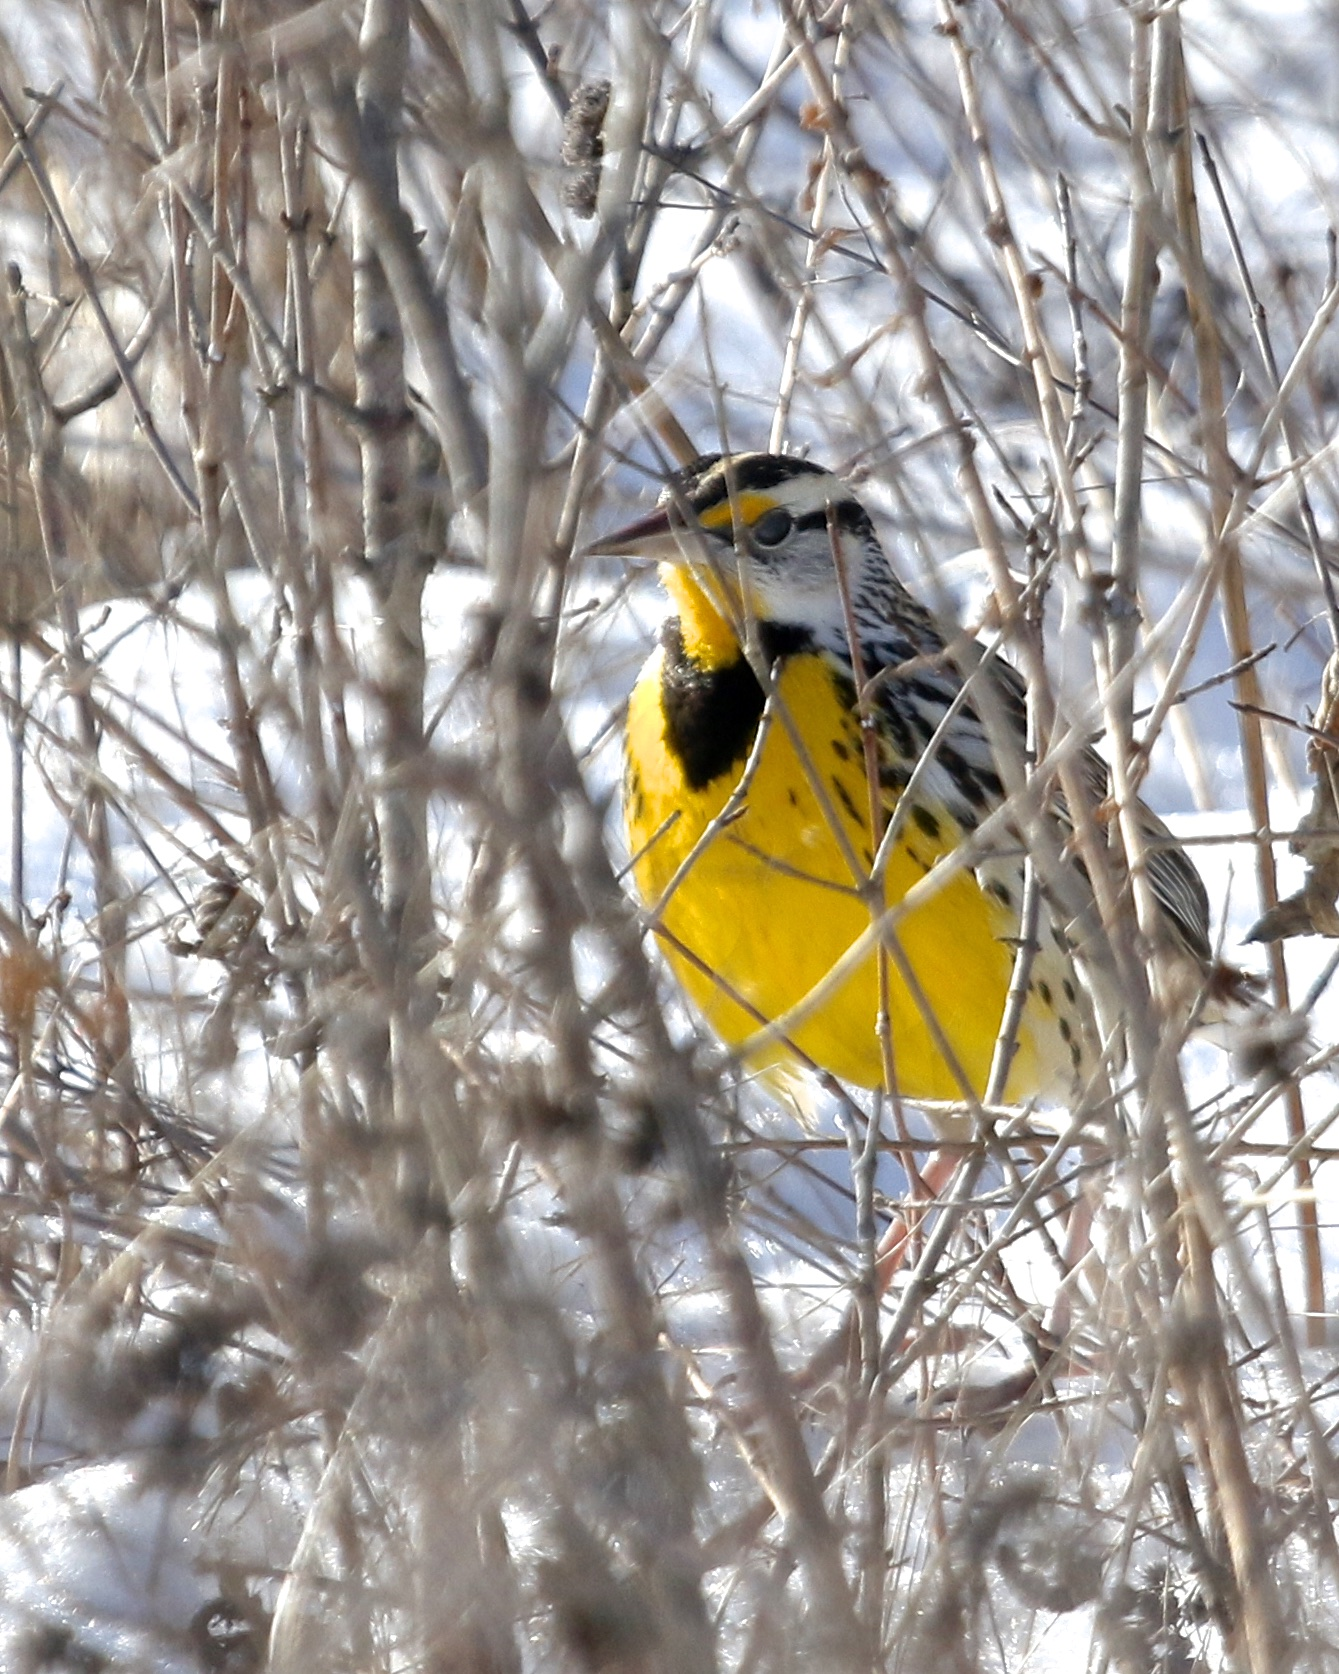 ~Eastern Meadowlark at the Grasslands, 1/25/15.~